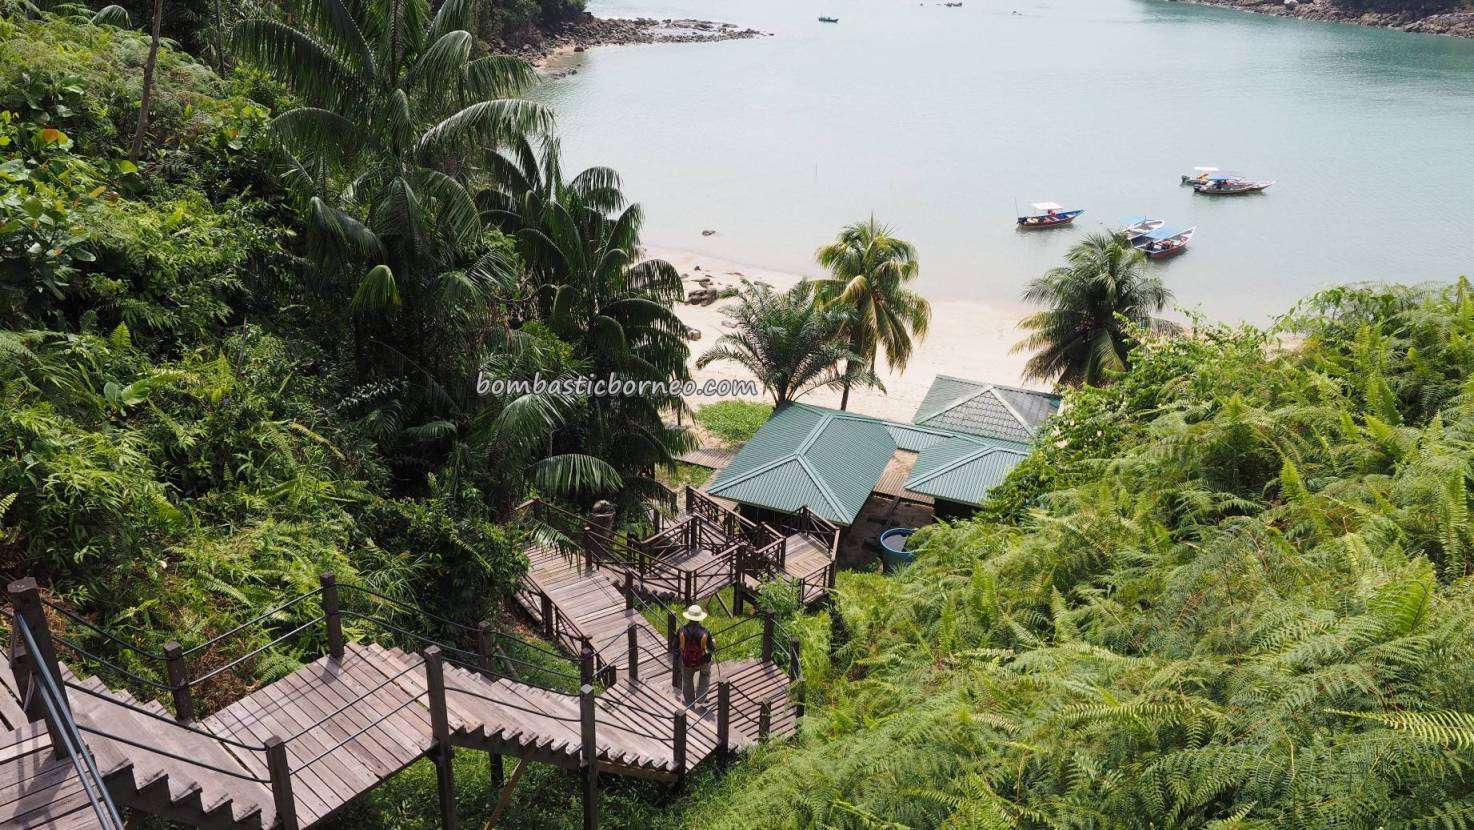 beach, Taman Negara, adventure, nature, jungle hiking, backpackers, hidden paradise, Kuching, Malaysia, Tourist attraction, travel guide, view point, Pulau Tok Nan, Transborneo, 砂拉越峇哥国家公园, 婆罗洲旅游景点